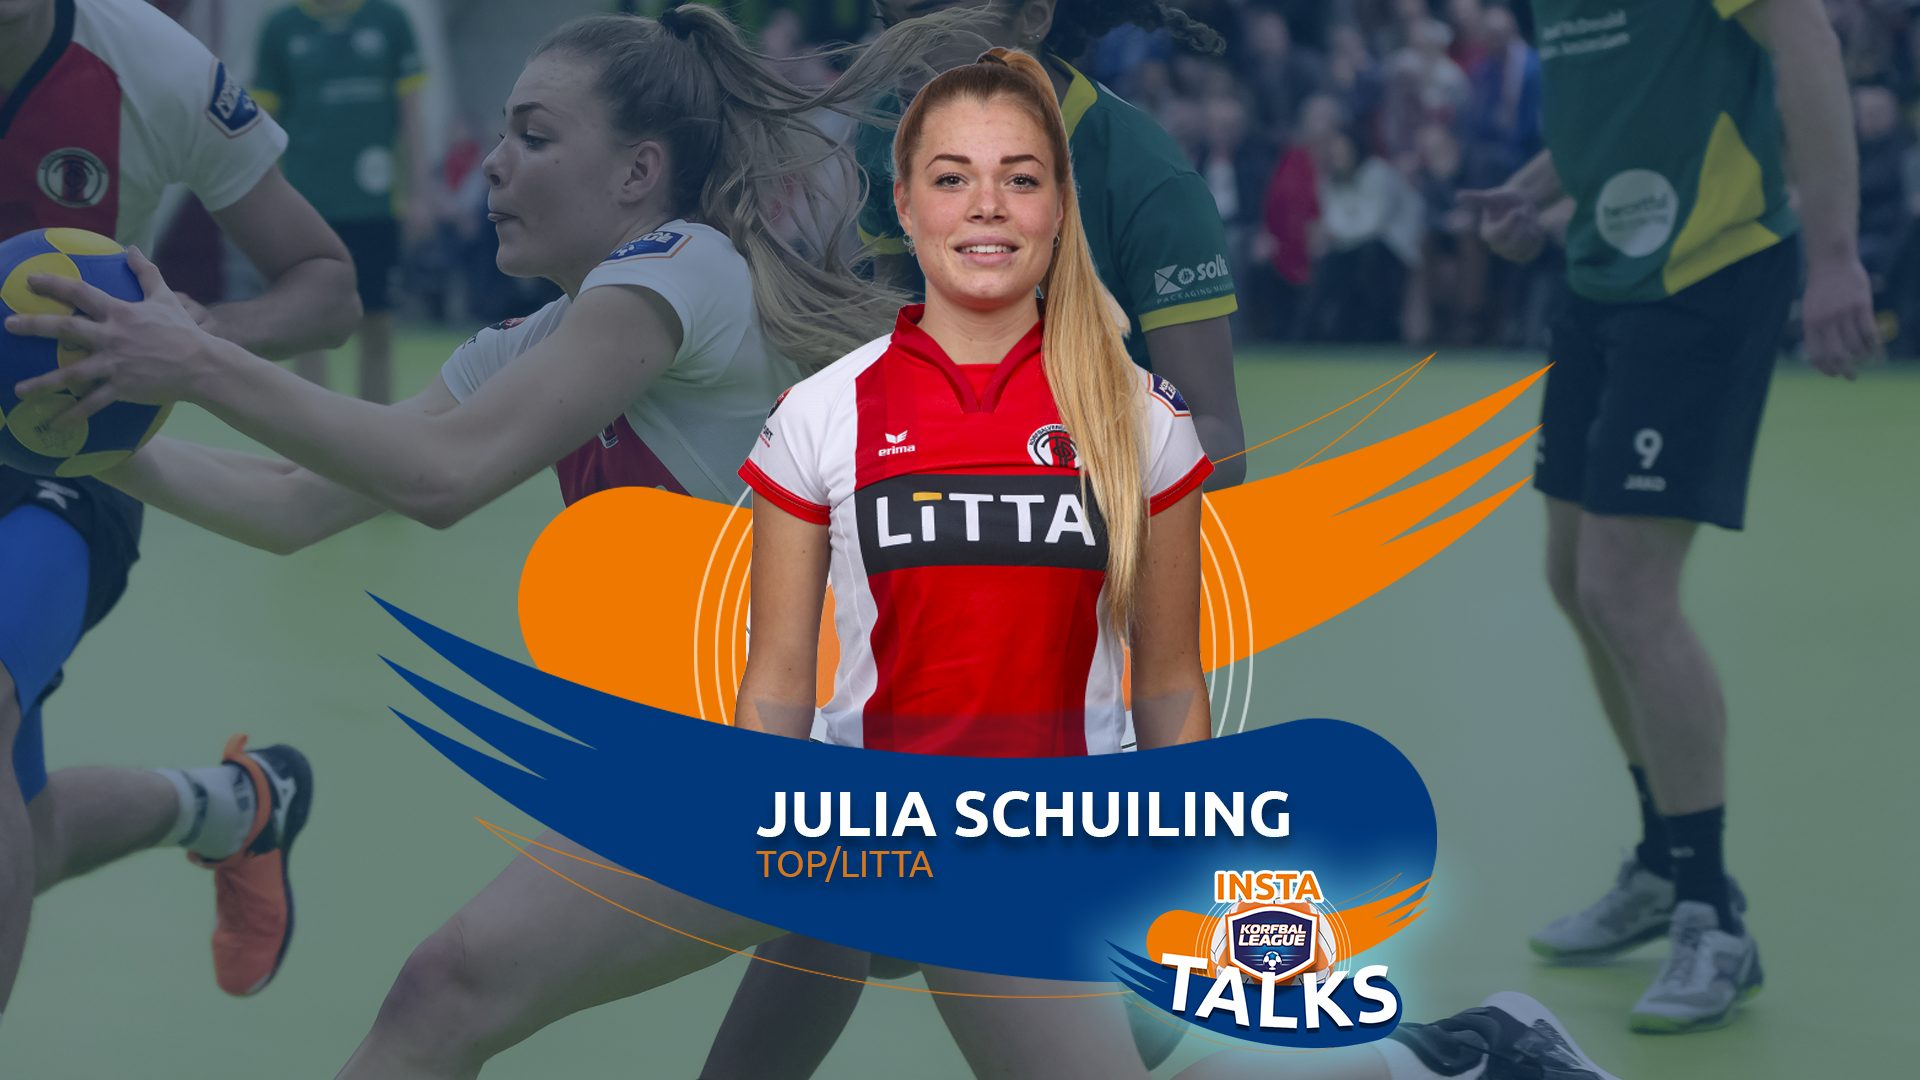 Insta Talks: Julia Schuiling